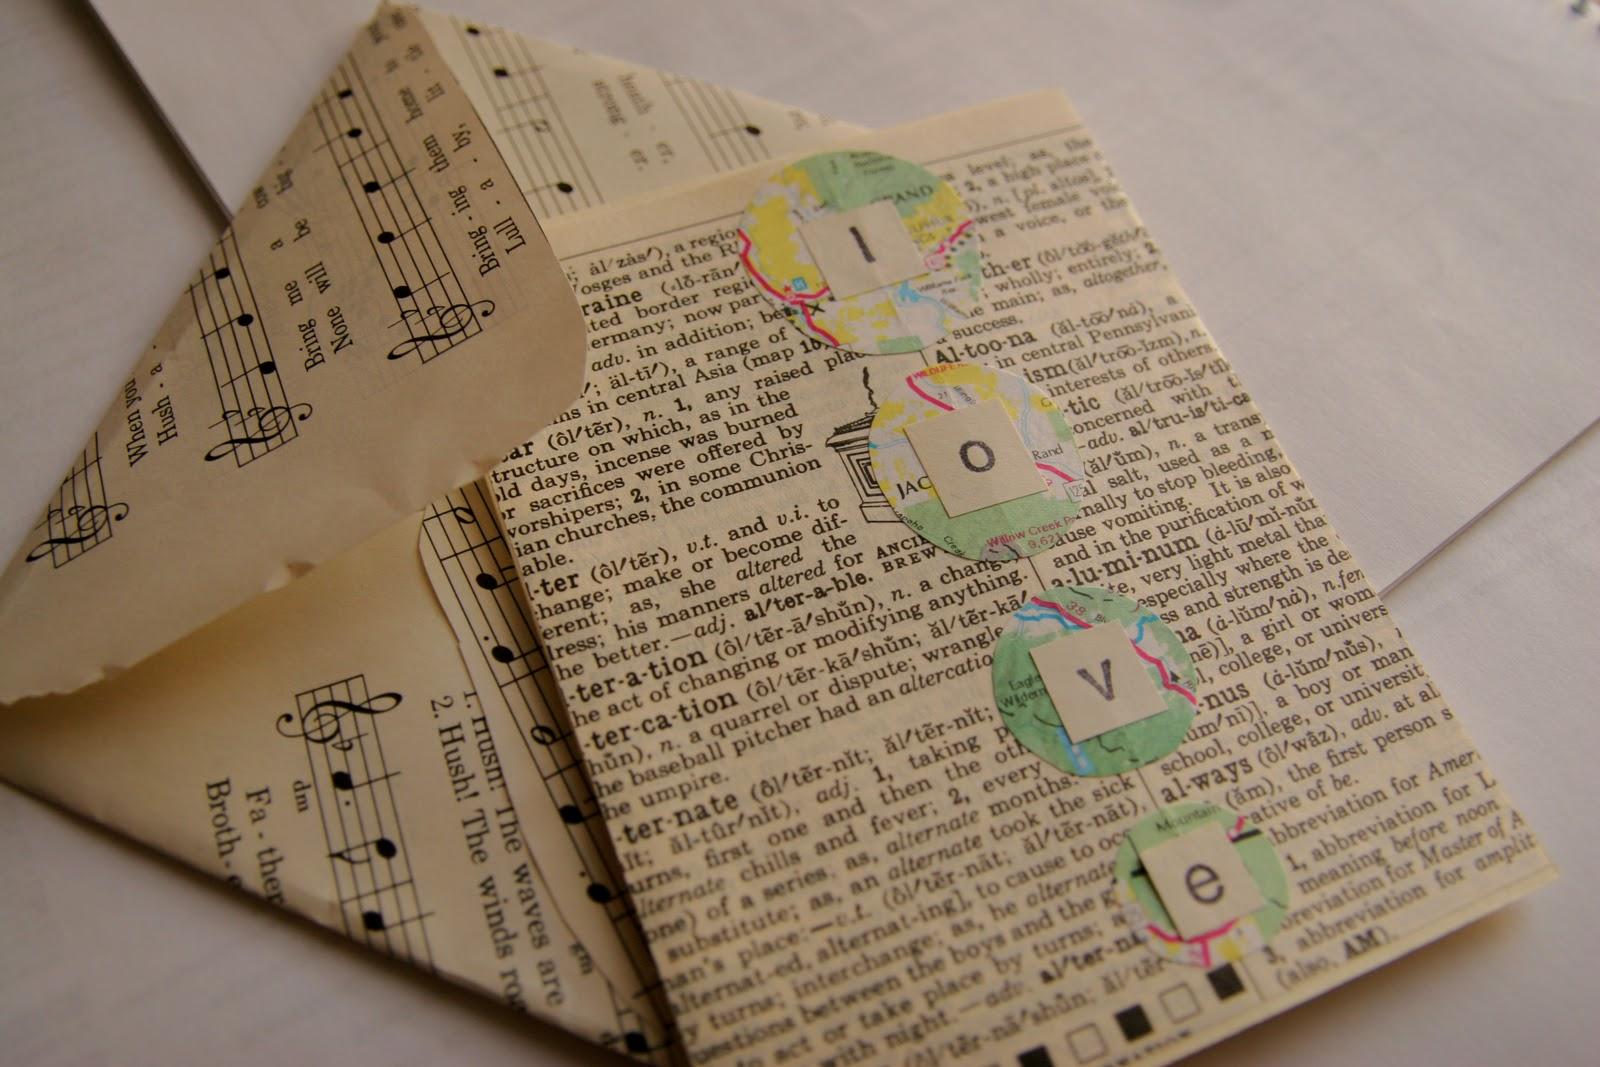 How to make scrapbook using recycled materials - Indoor Activities Day 11 Handmade Recycled Cards Envelopes